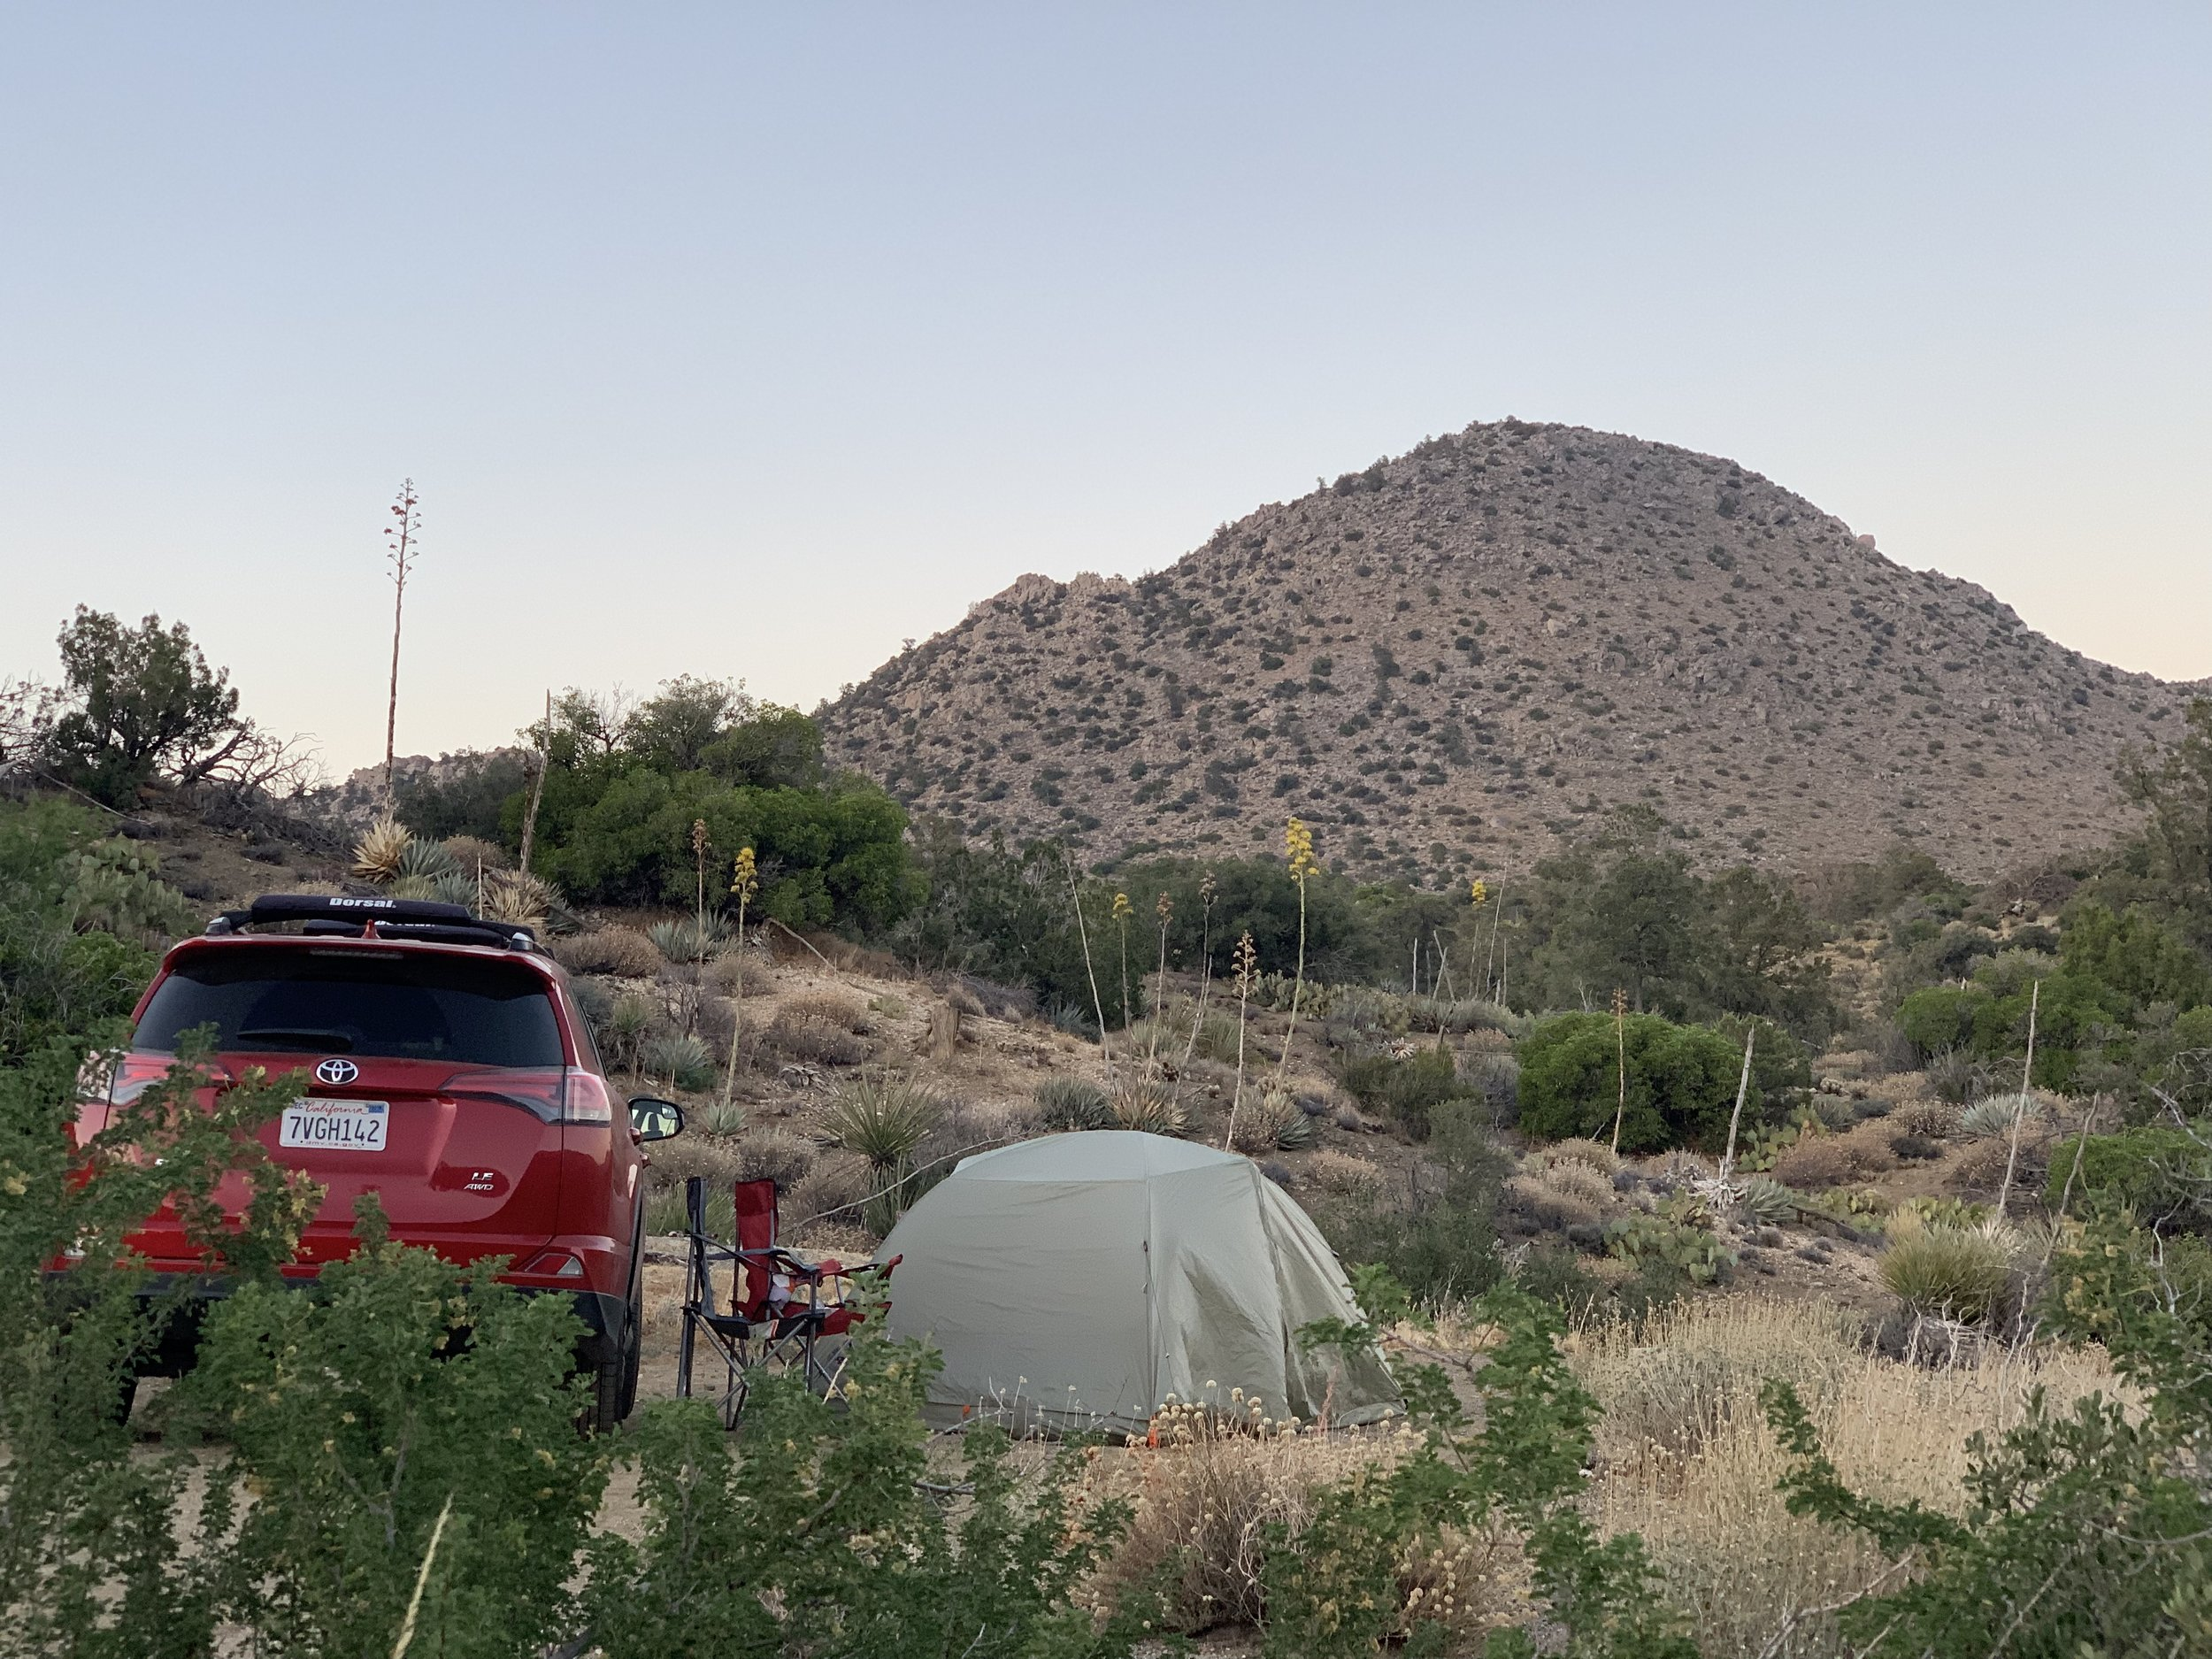 The Sugarloaf Campground is open year round